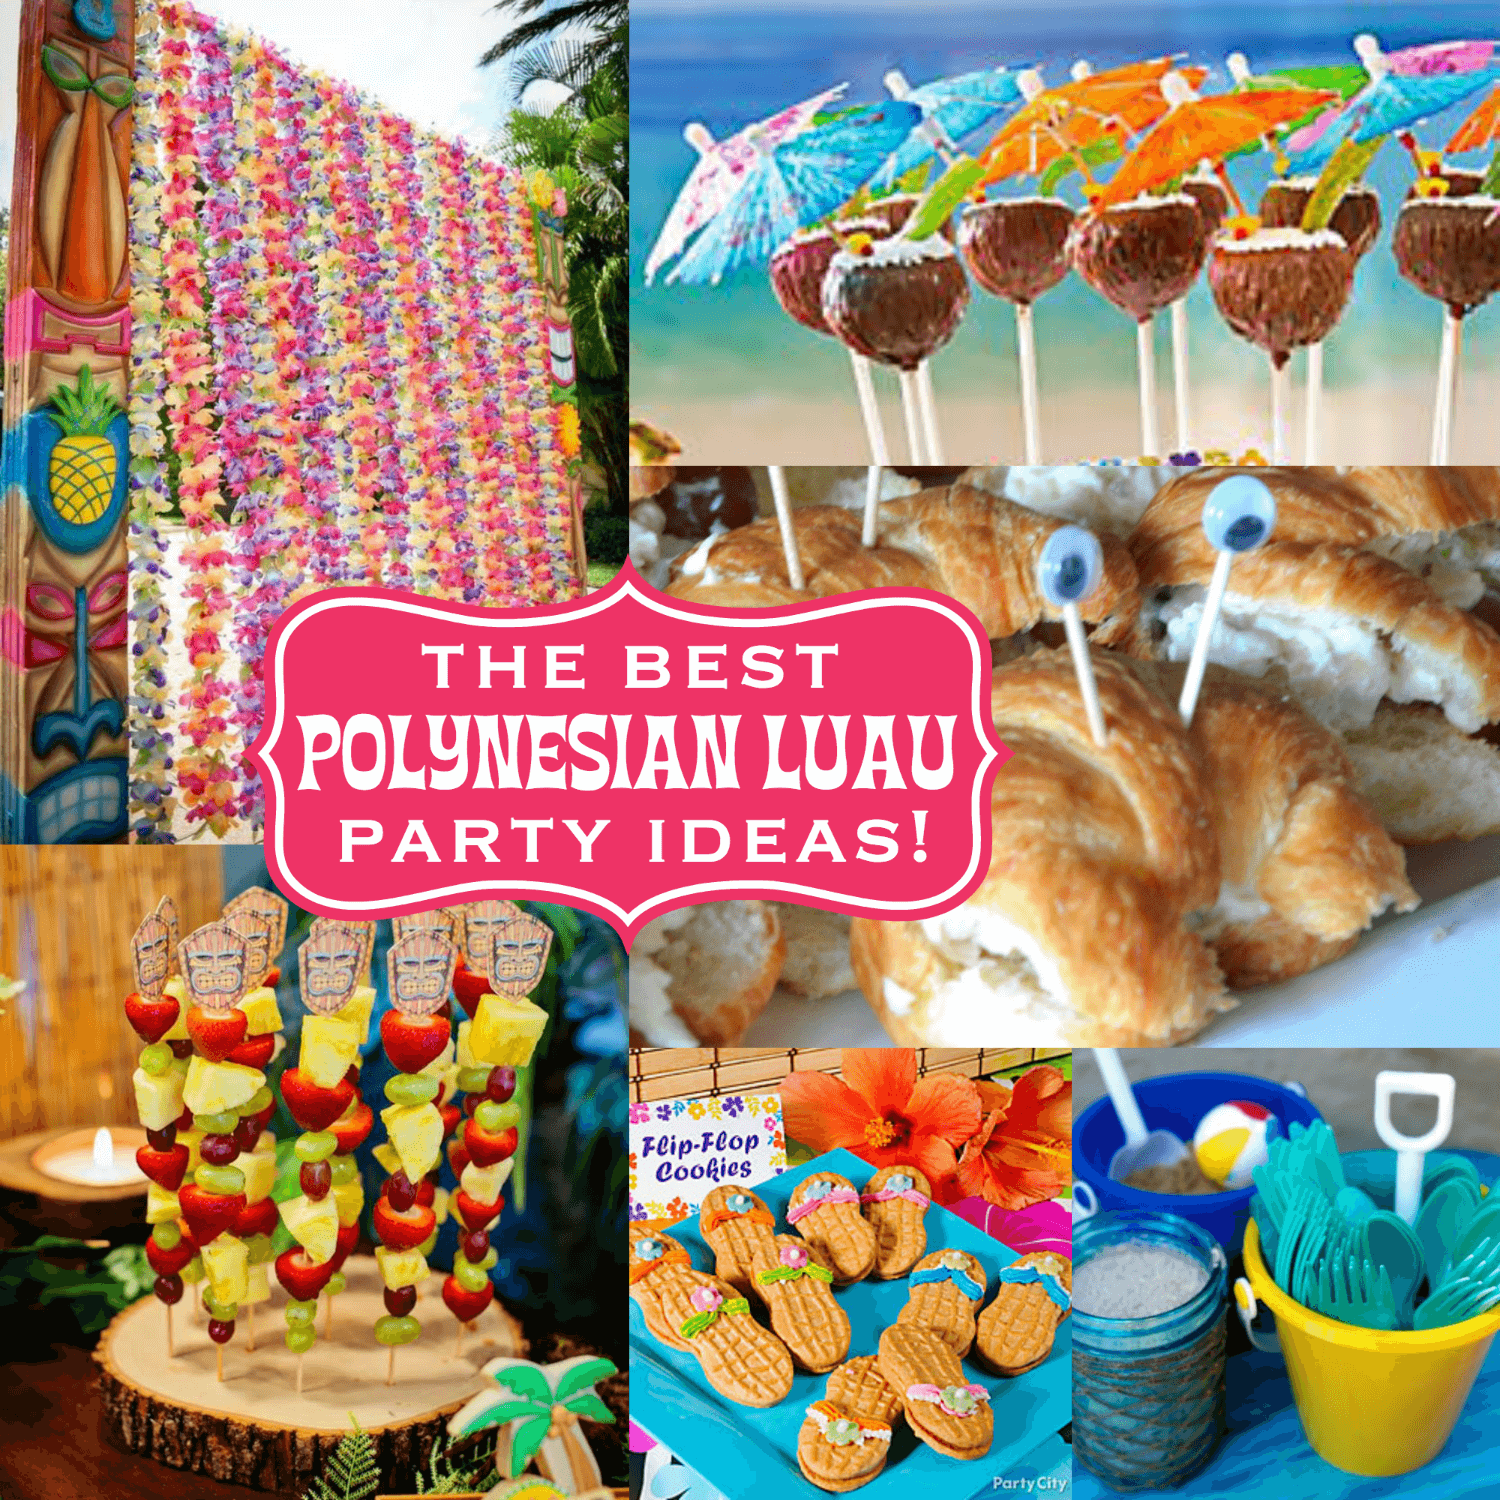 the best polynesian luau party ideas for a tiki celebration!